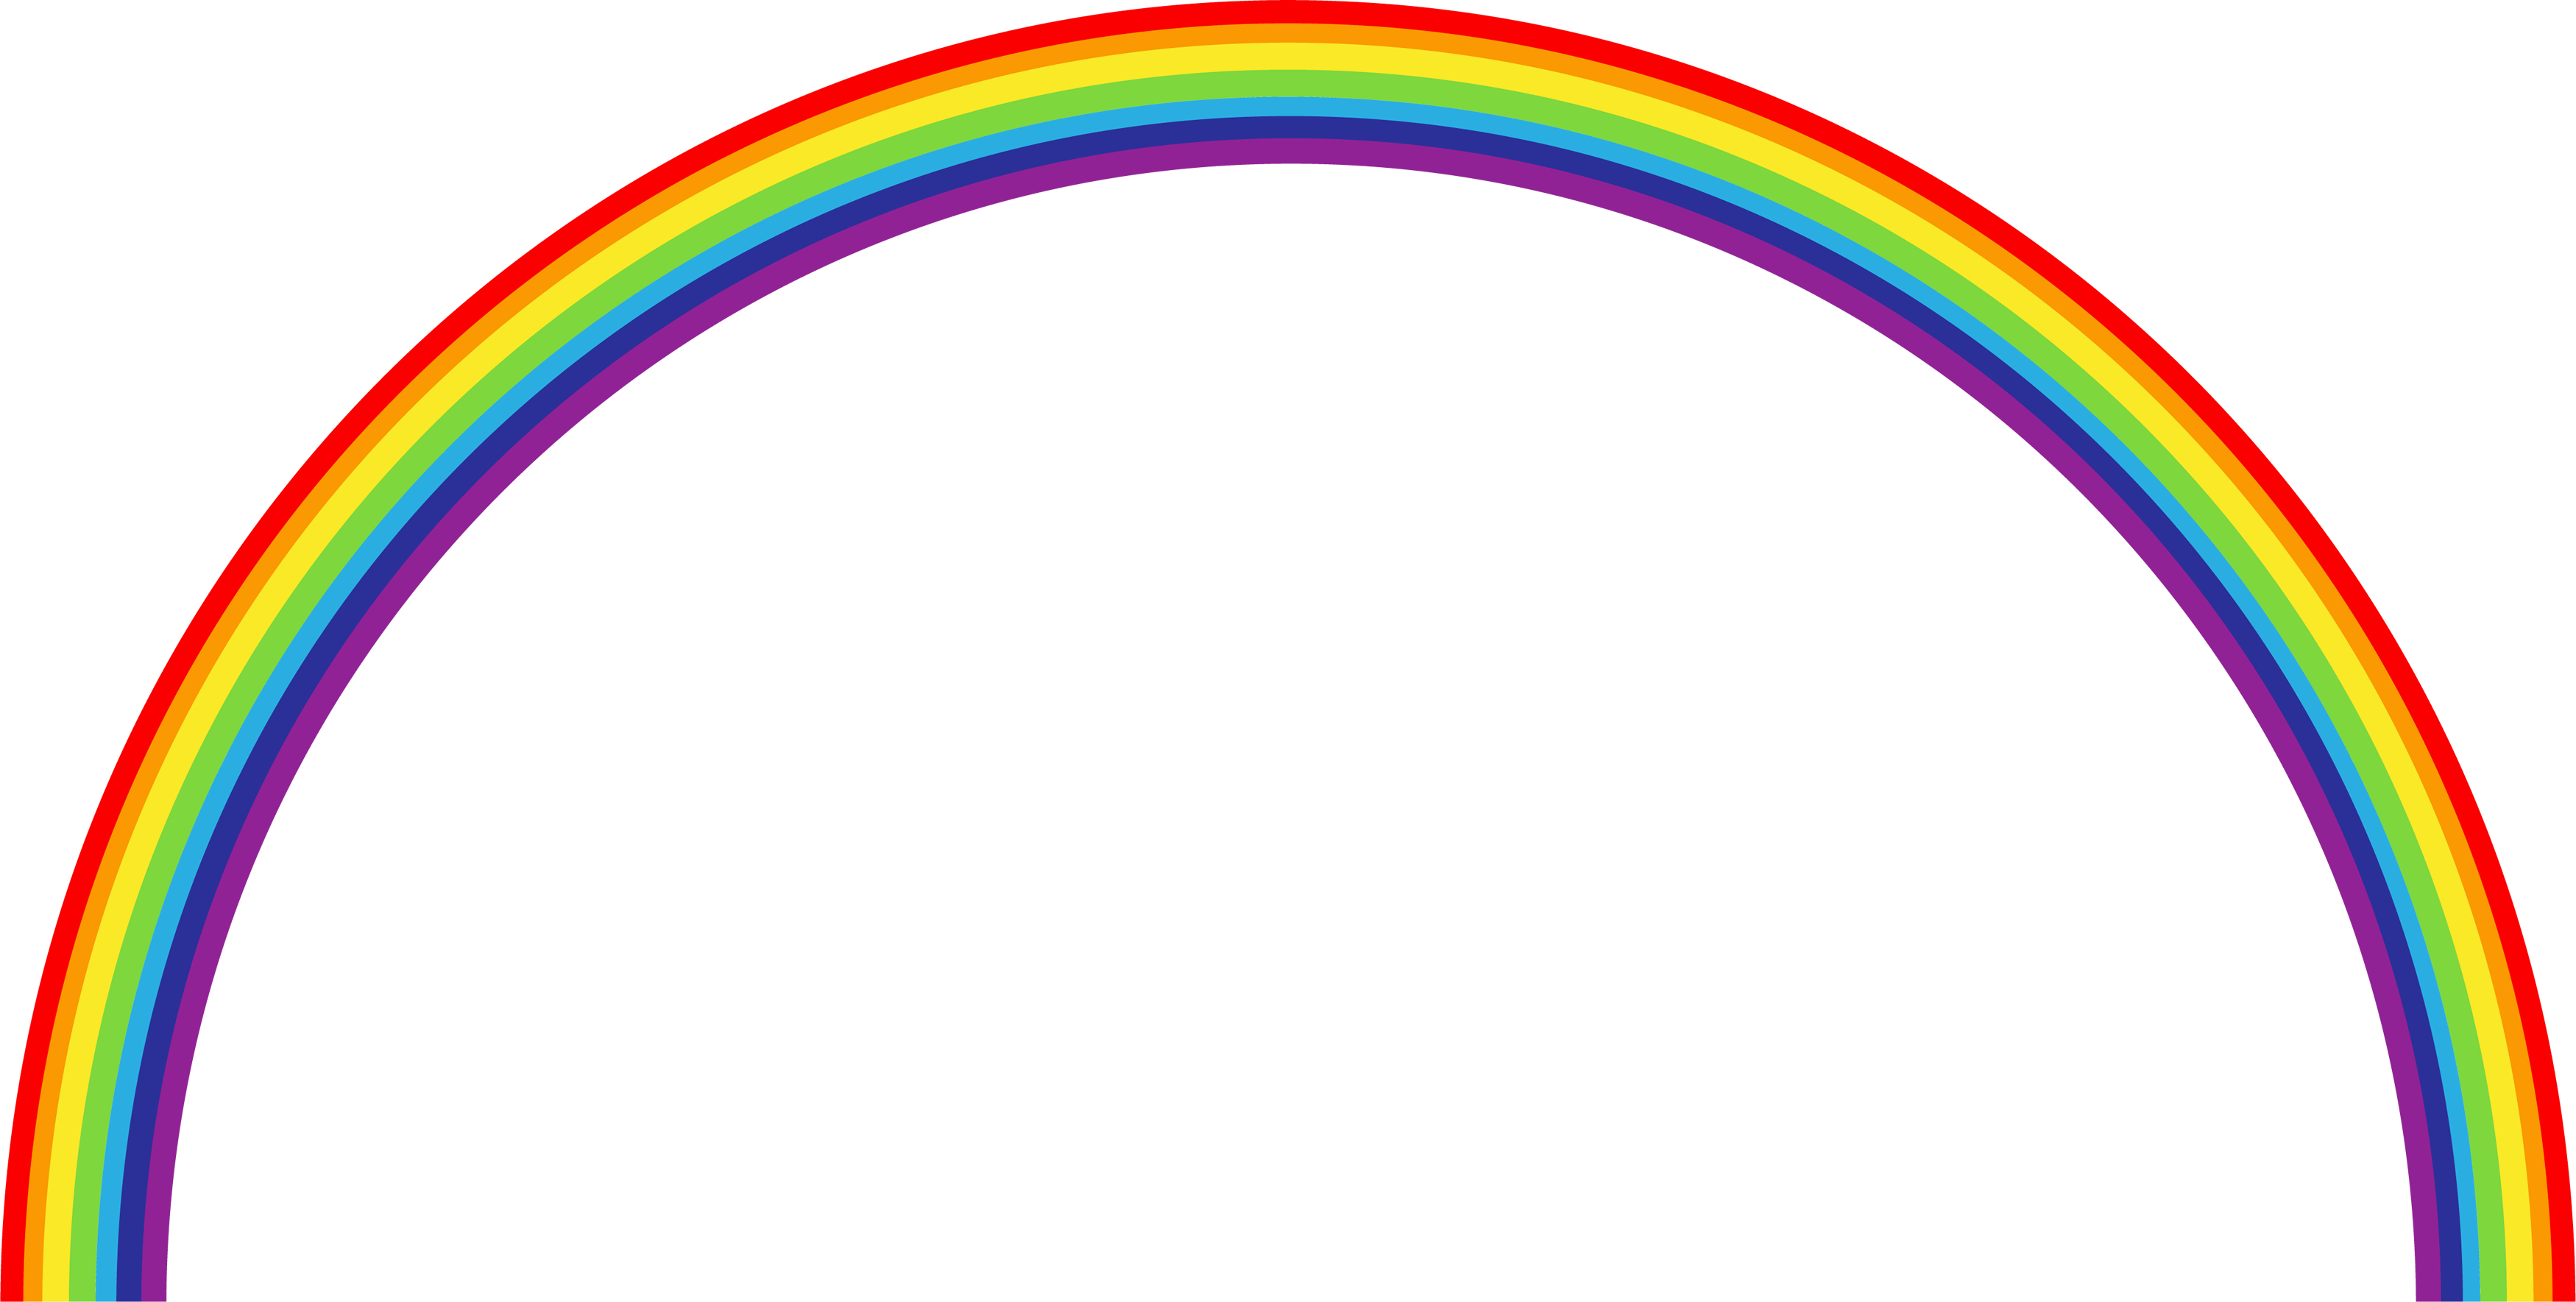 Rainbow background png. Image without web icons